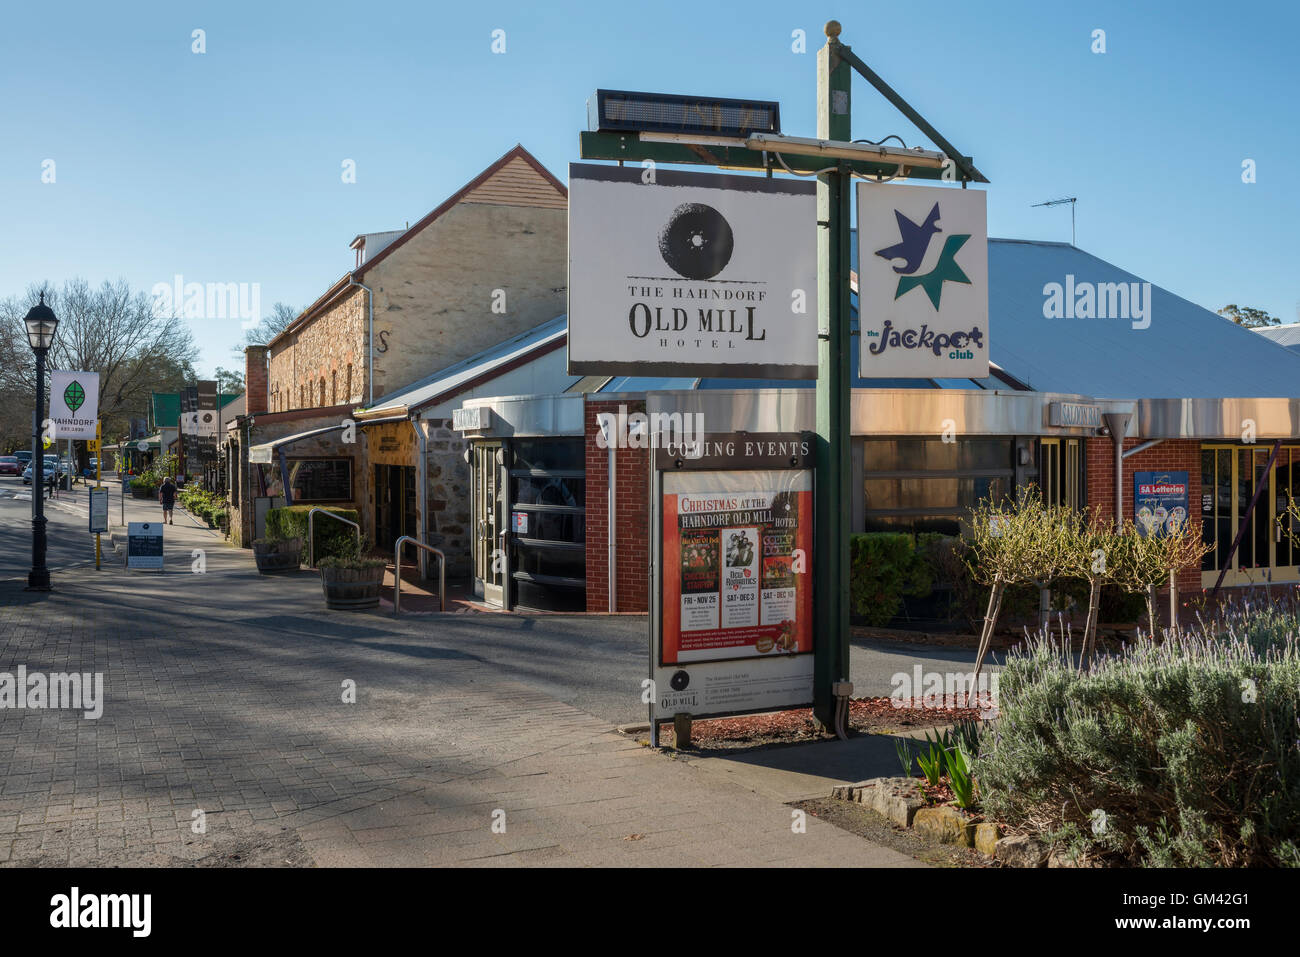 Old Mill Gm >> Hahndorf Old Mill Stock Photos Hahndorf Old Mill Stock